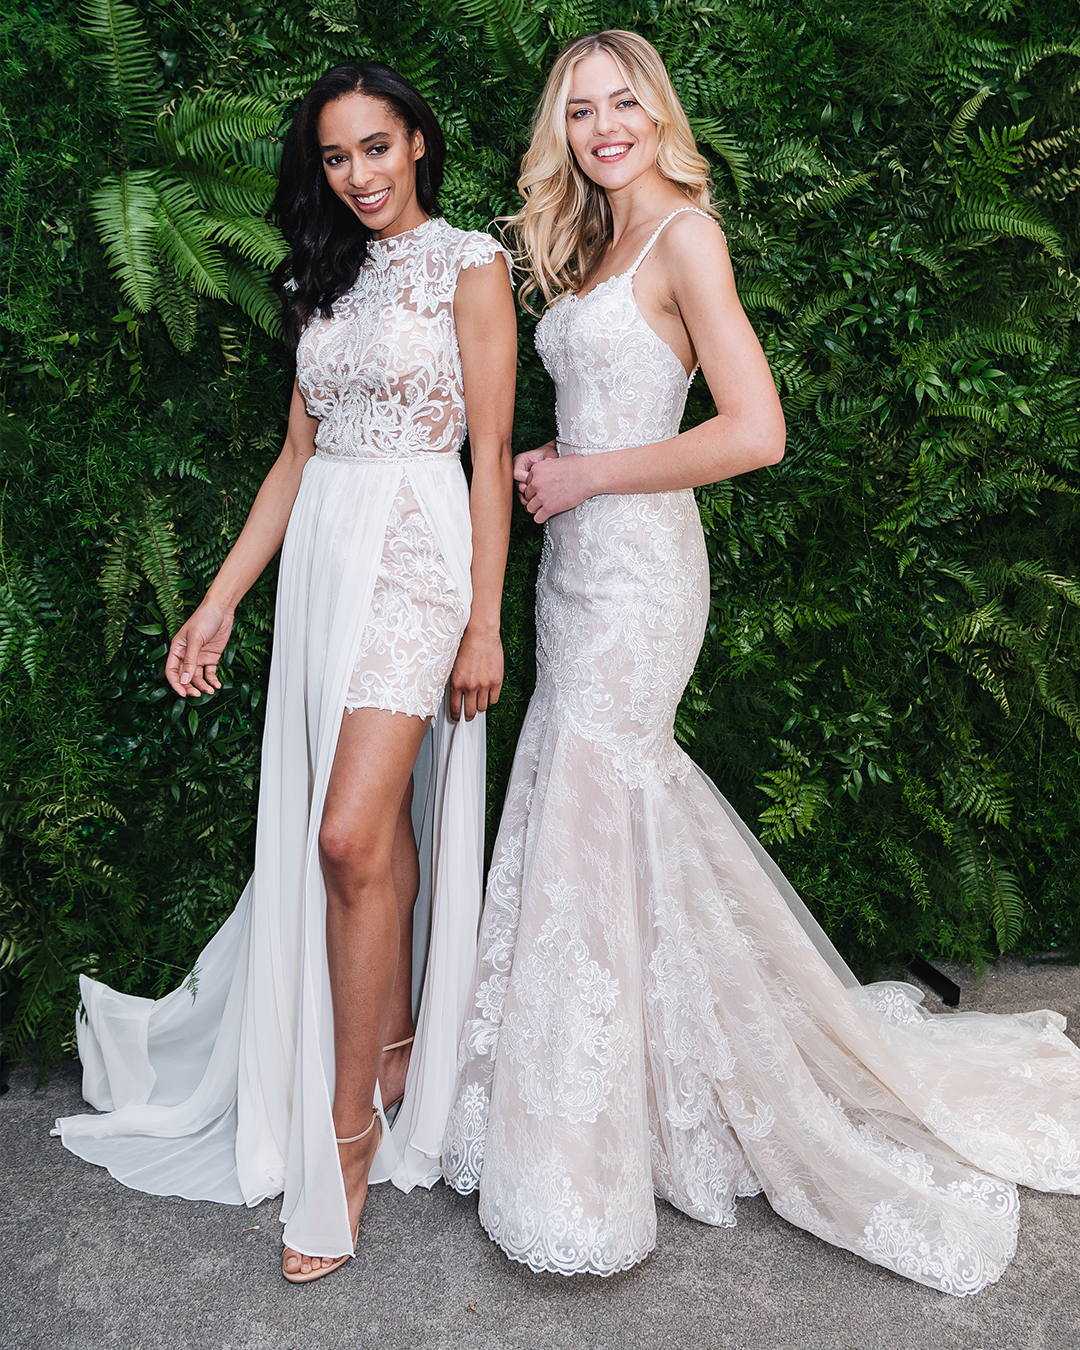 Two women in front of greenery in white lace wedding dresses